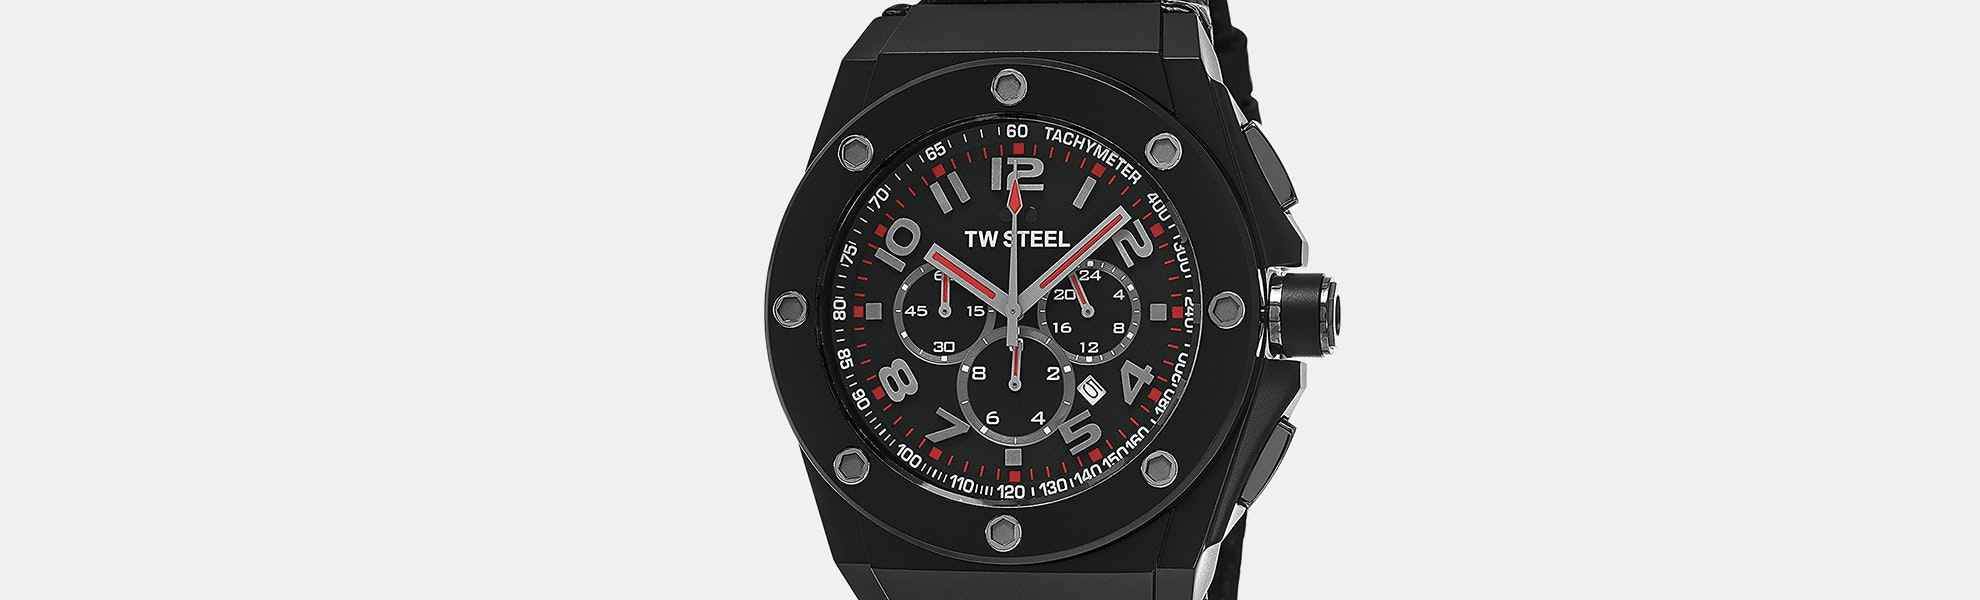 TW Steel CEO Tech Quartz Watch